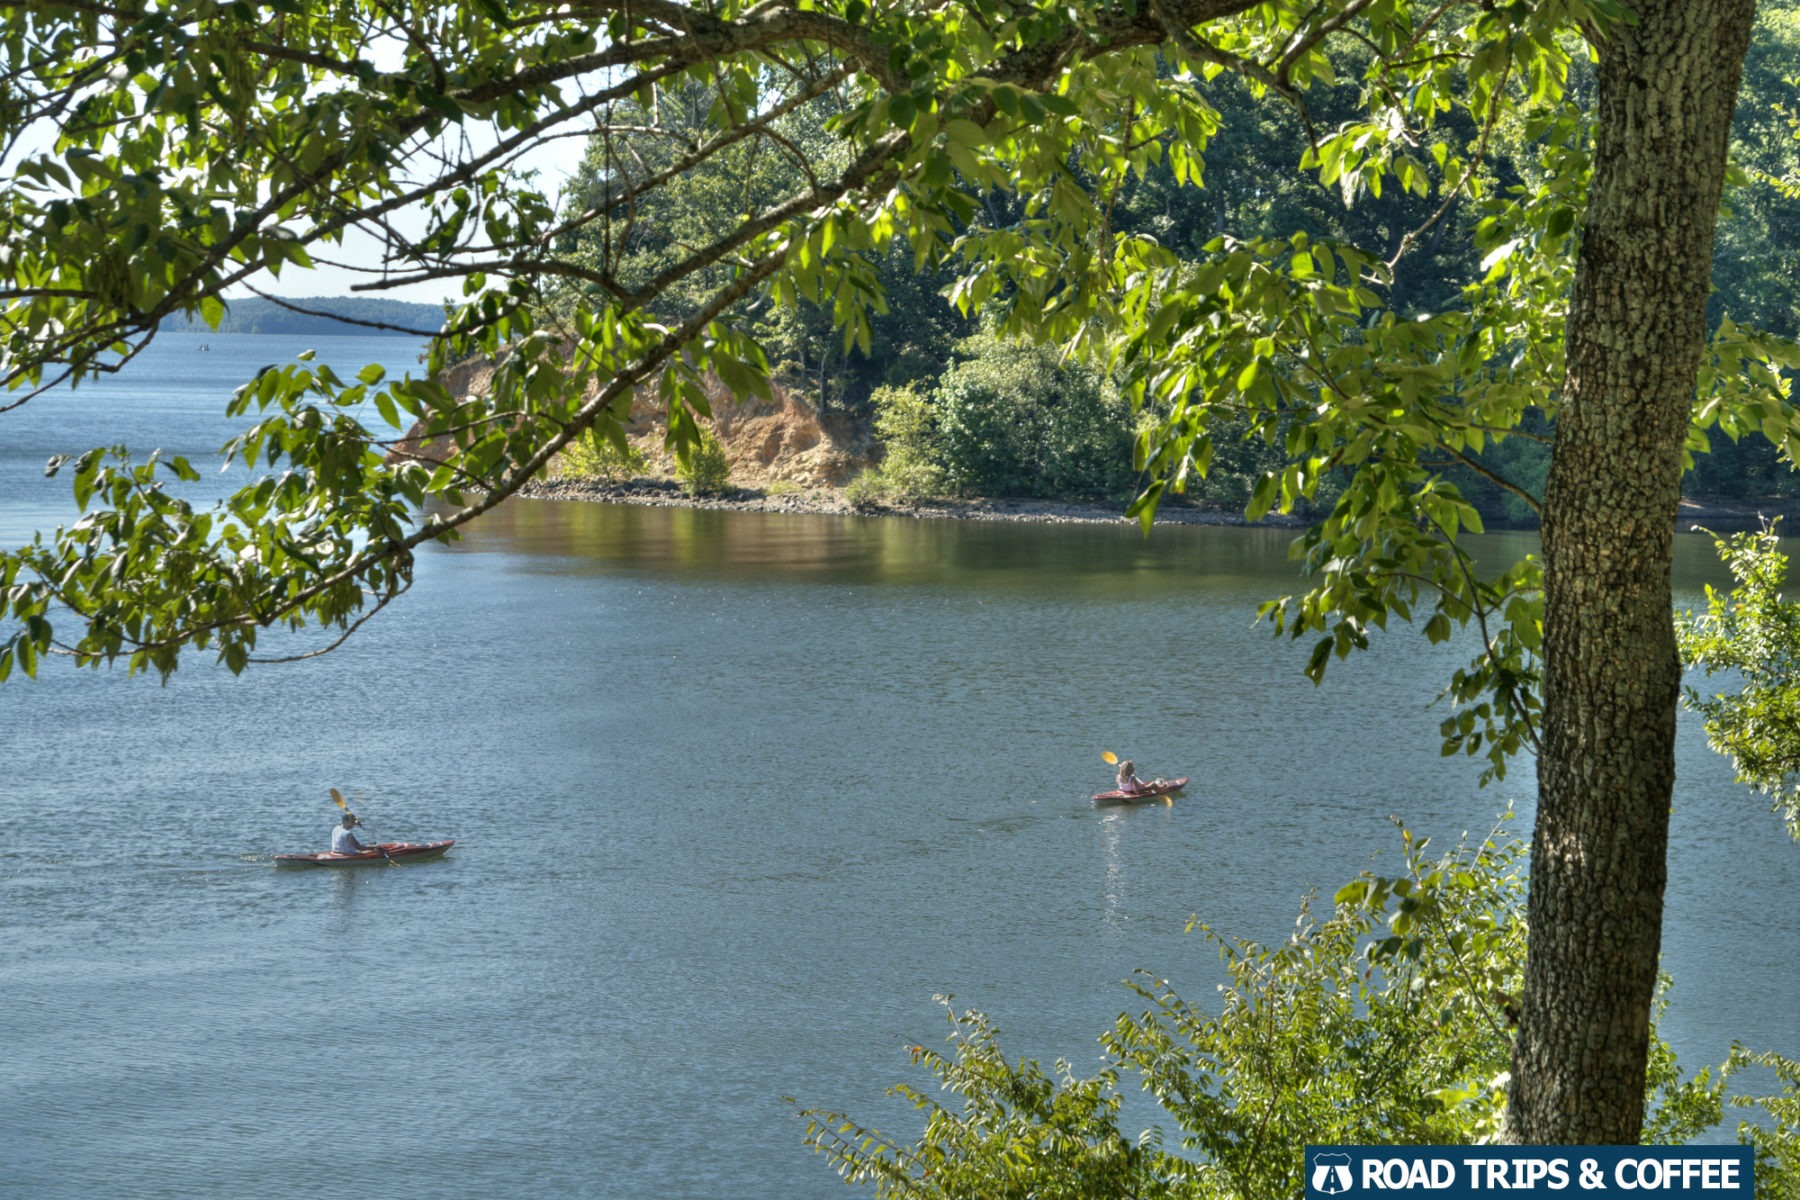 A pair of kayakers paddle across the deep blue Kentucky Lake at Land Between the Lakes National Recreation Area